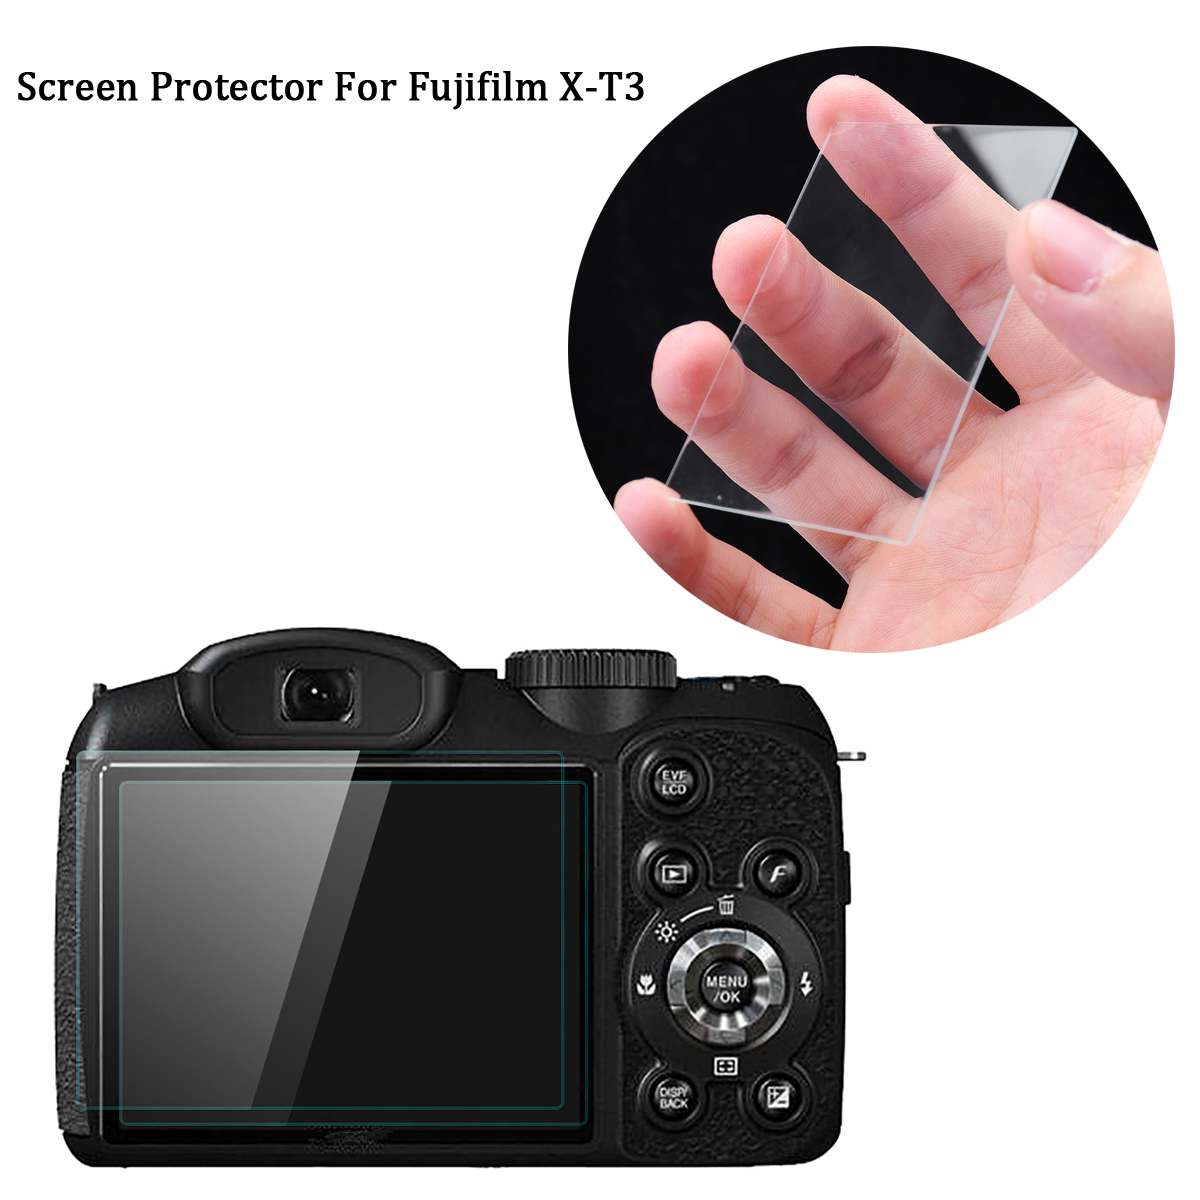 Hot 2PCS Protective Screen Protector Foils For Fujifilm X-T3 Fuji XT3 X-t3 Mirrorless Digital Camera Tempered Glass Anti-Scrac